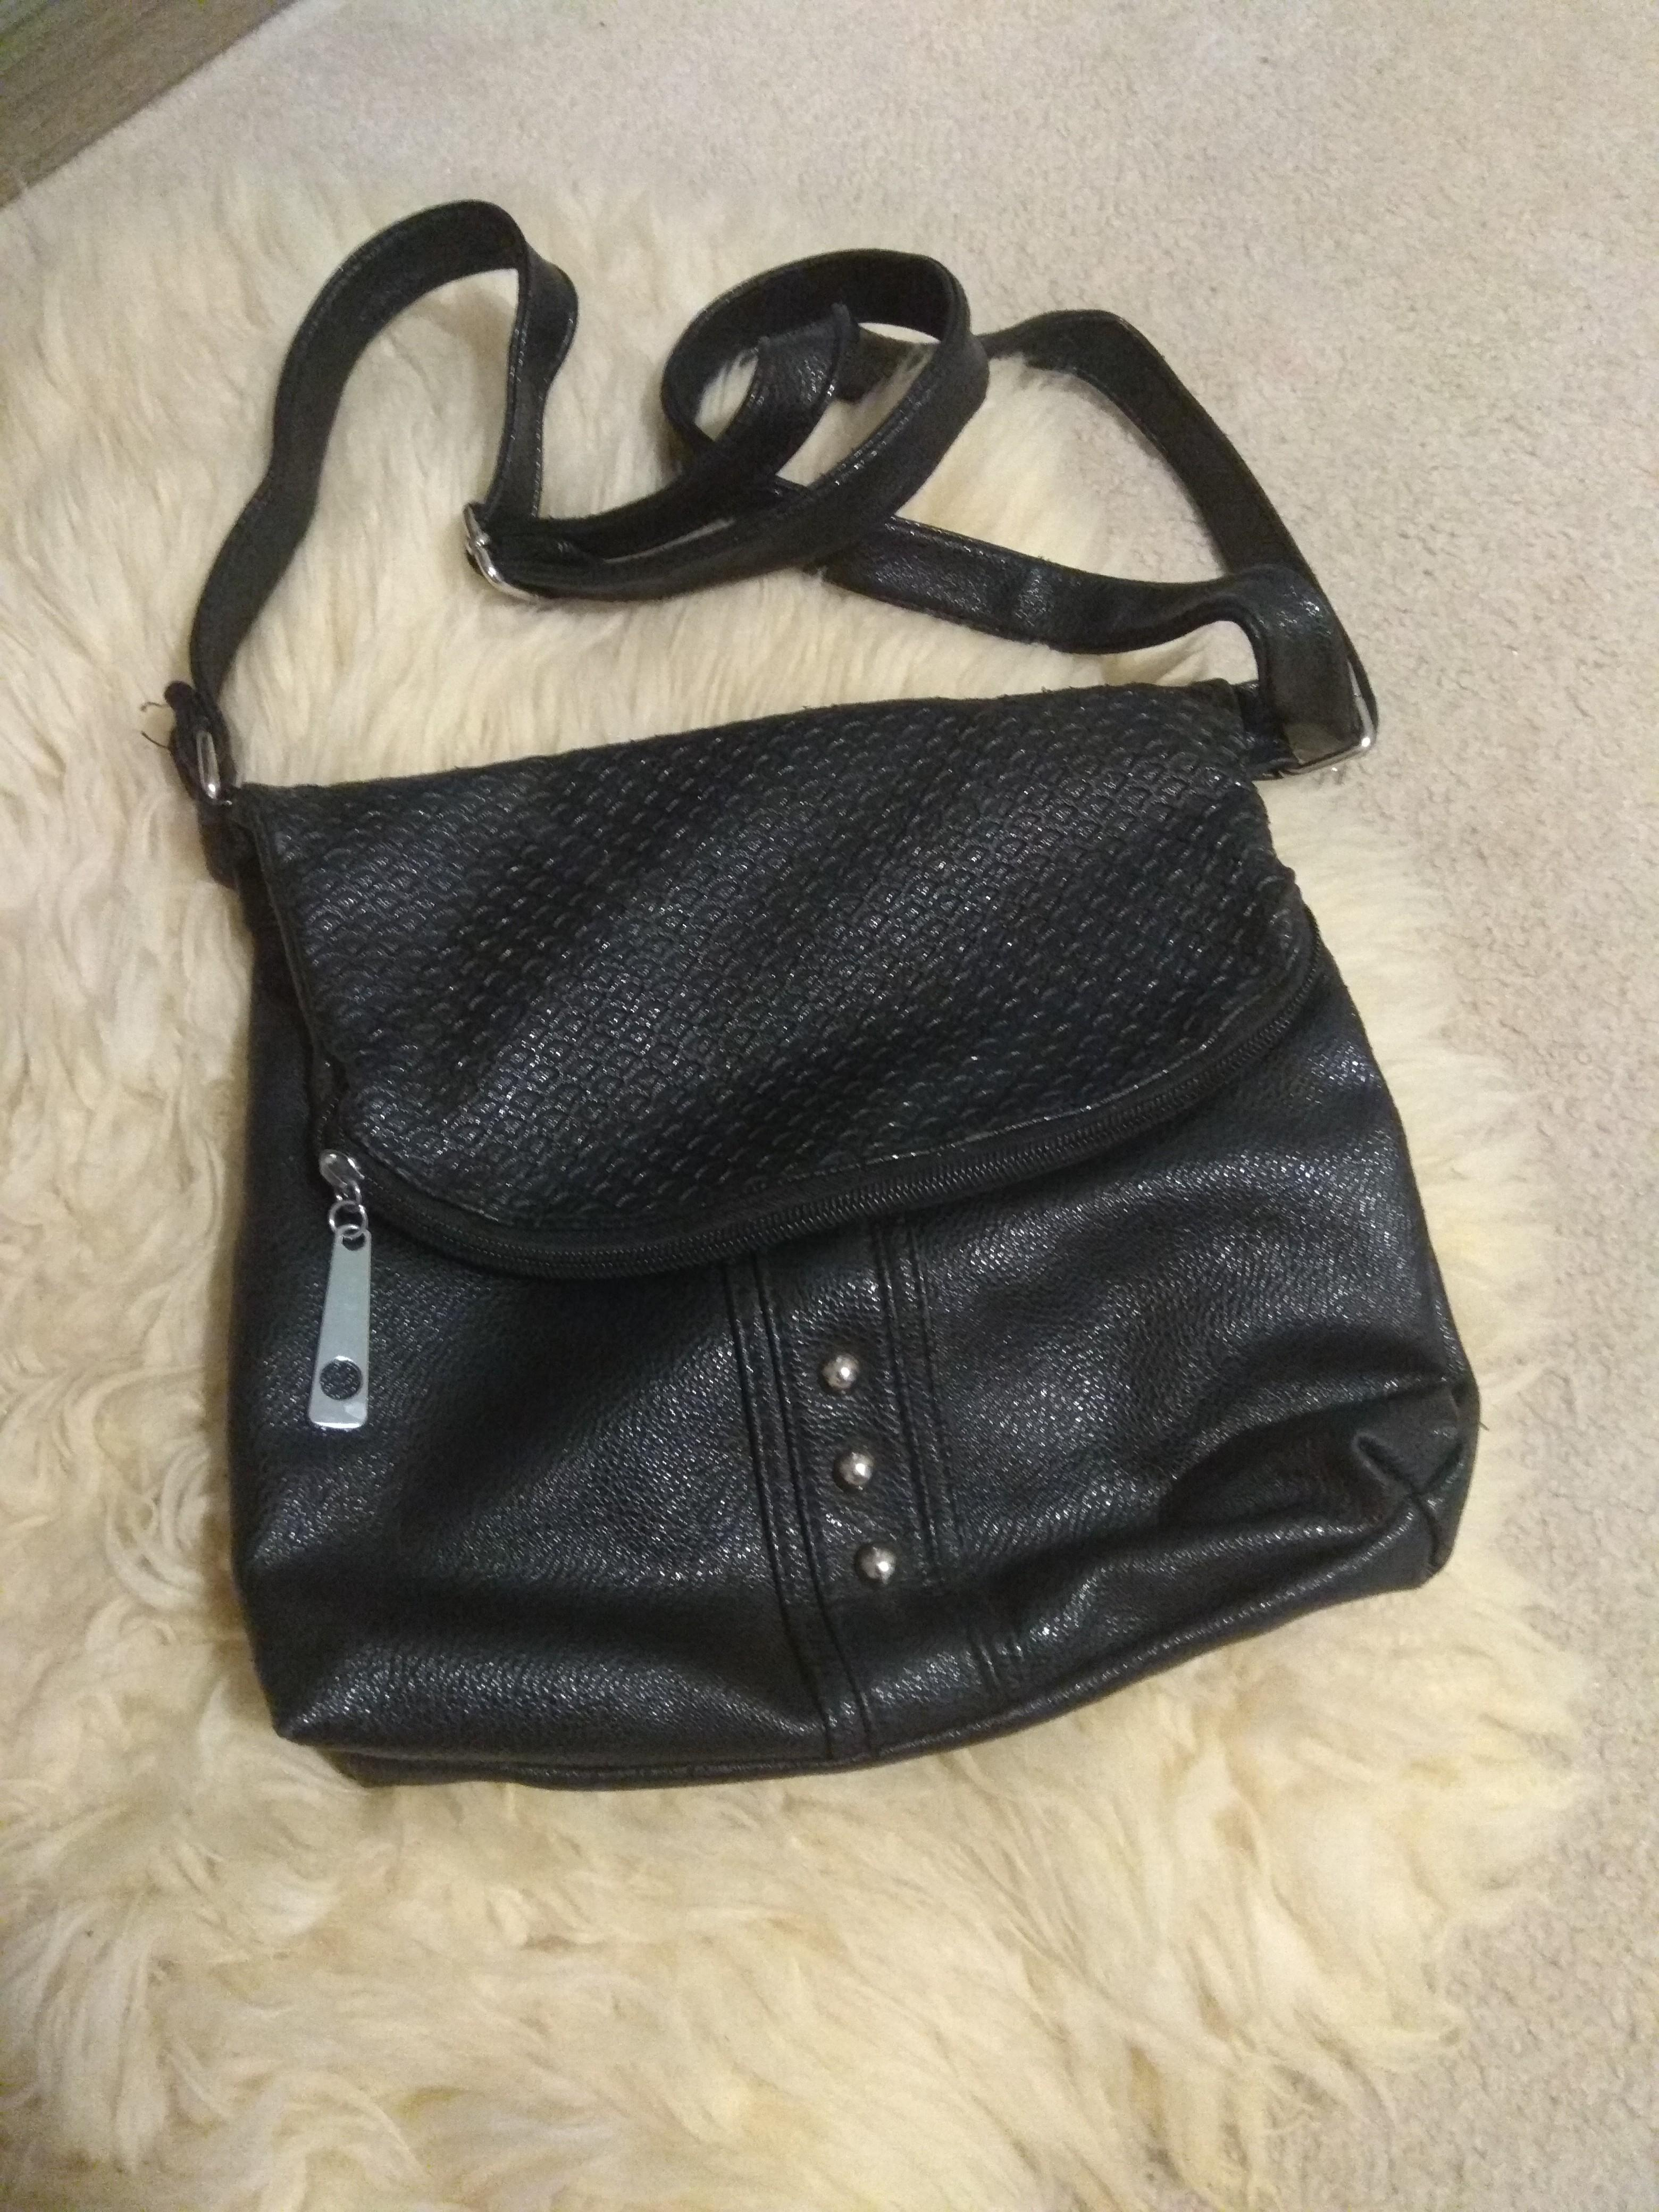 Black and silver stud purse